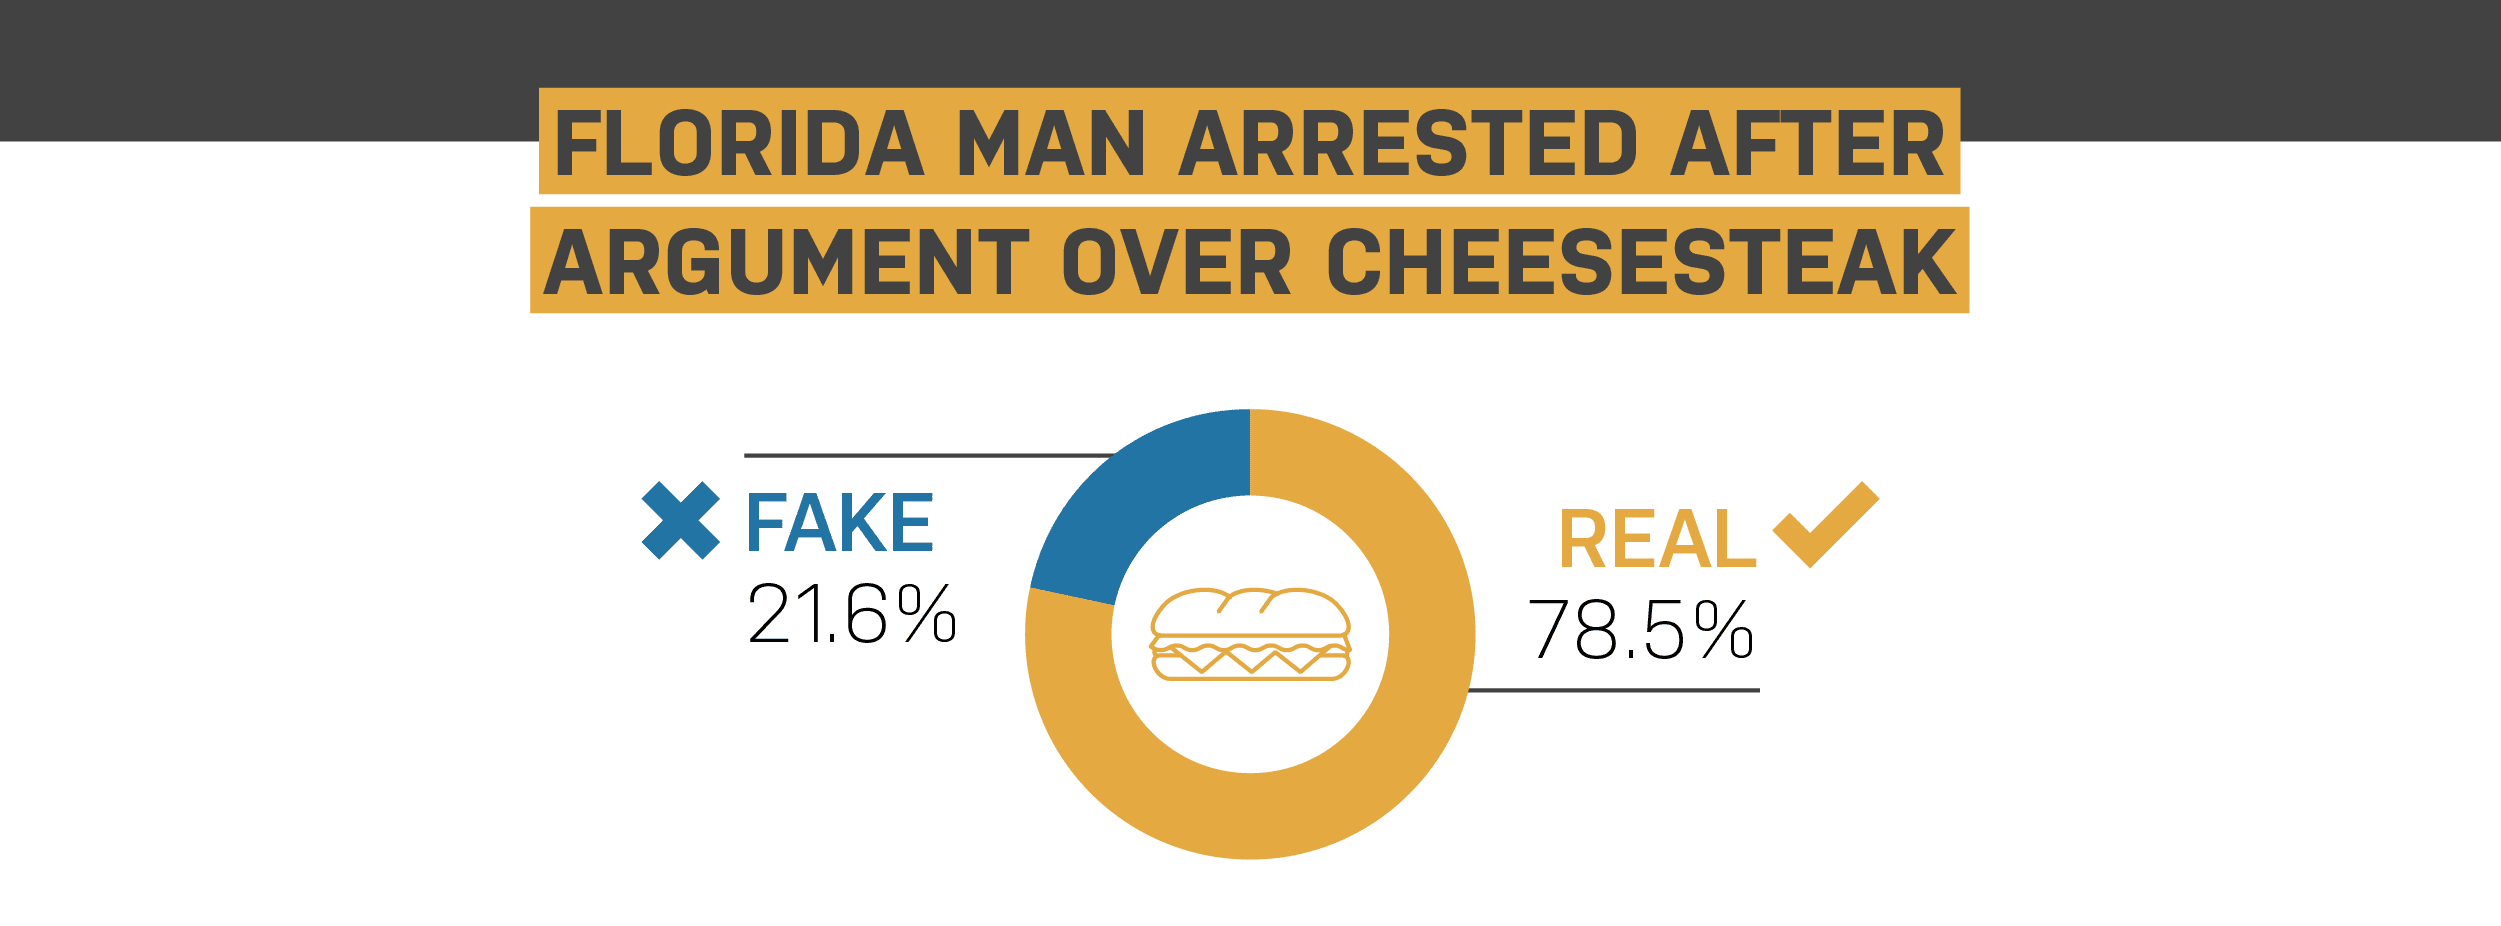 florida-man-arrested-over-cheesesteak